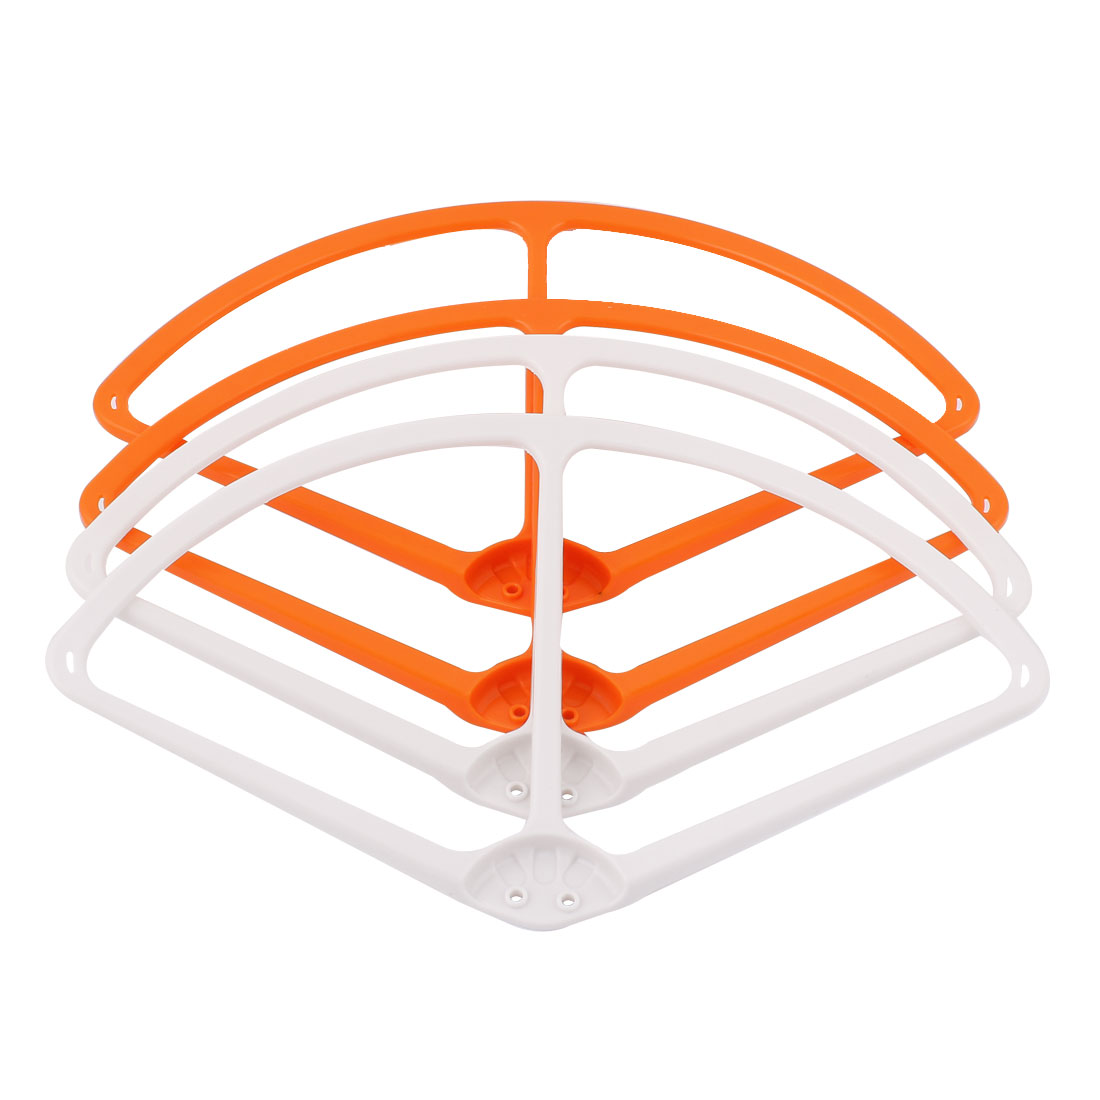 "9"" Propeller Protective Guard Bumper Set Orange White for DJI Phantom 2 Vision"